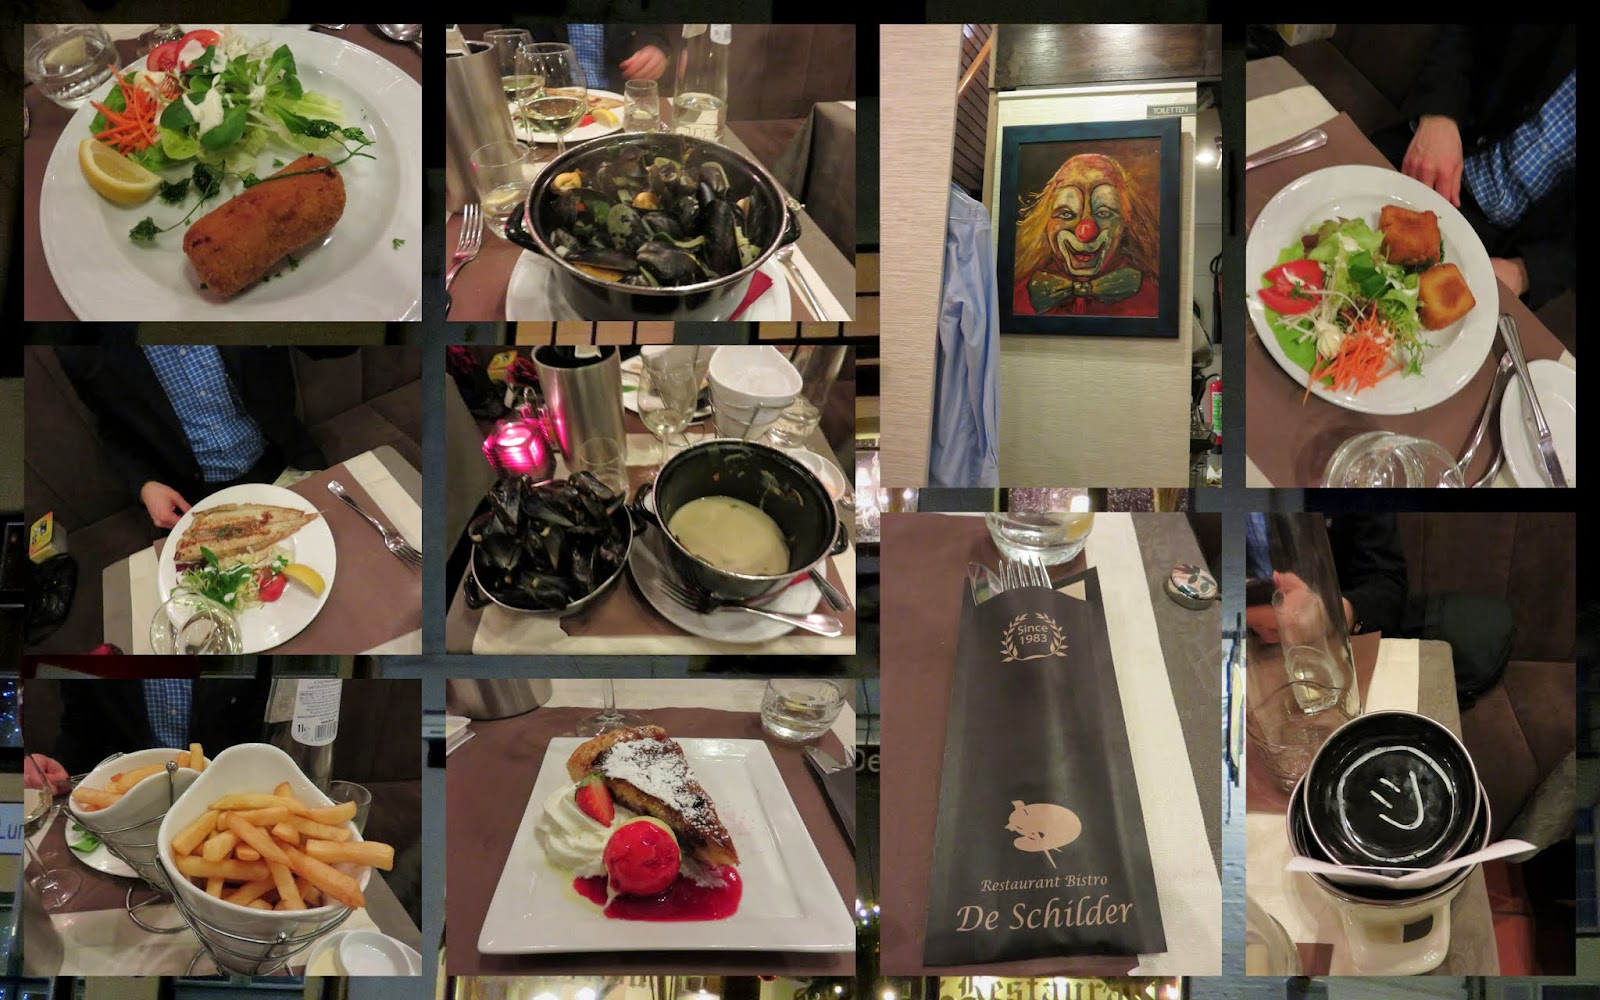 Christmas Dinner at Bistro de Schilder in Bruges, Belgium